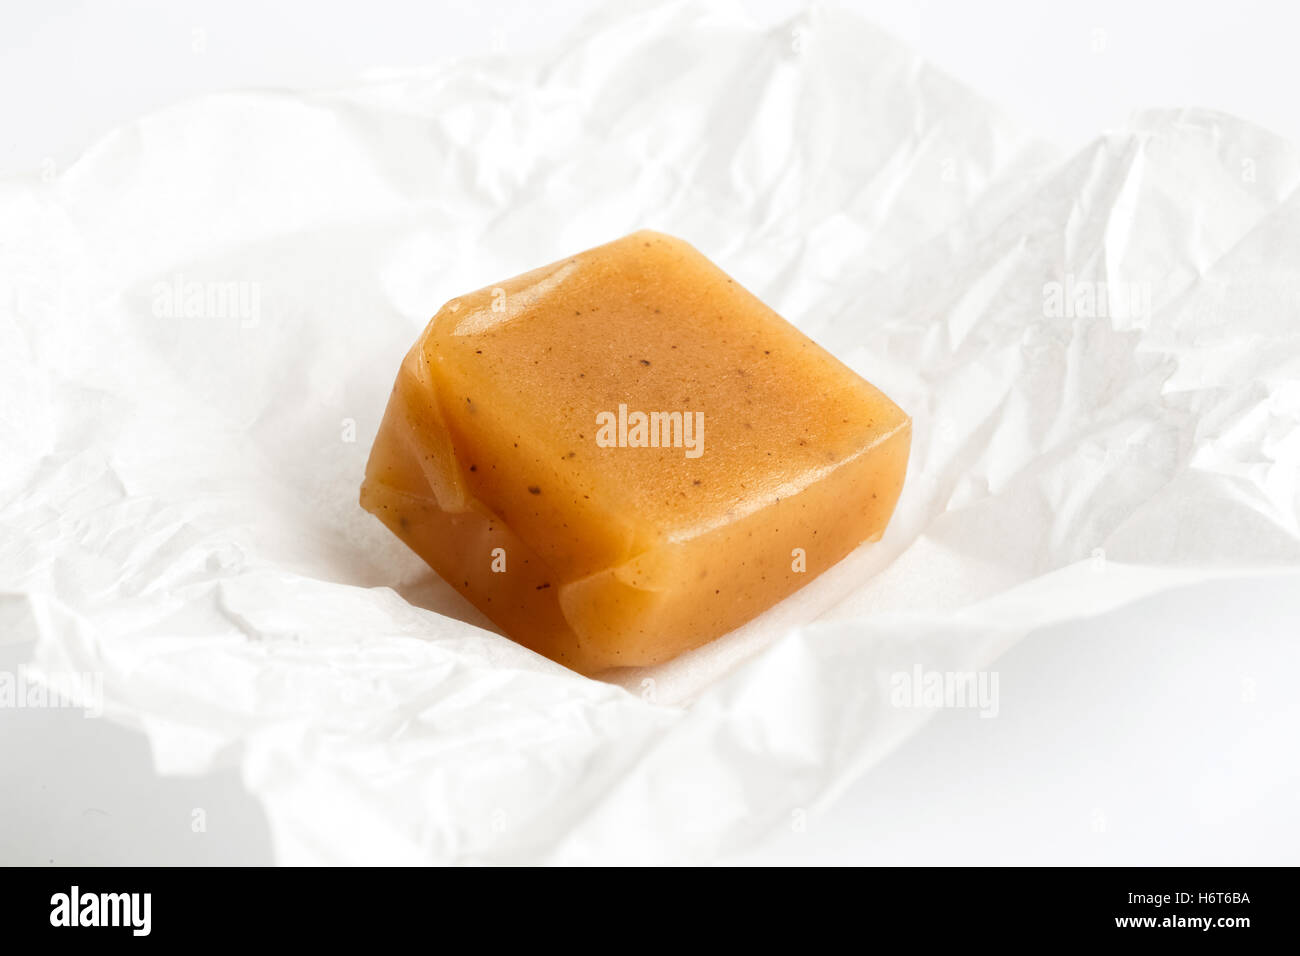 SIngle luxury unwrapped vanilla caramel toffee on white wrapper in perspective. - Stock Image